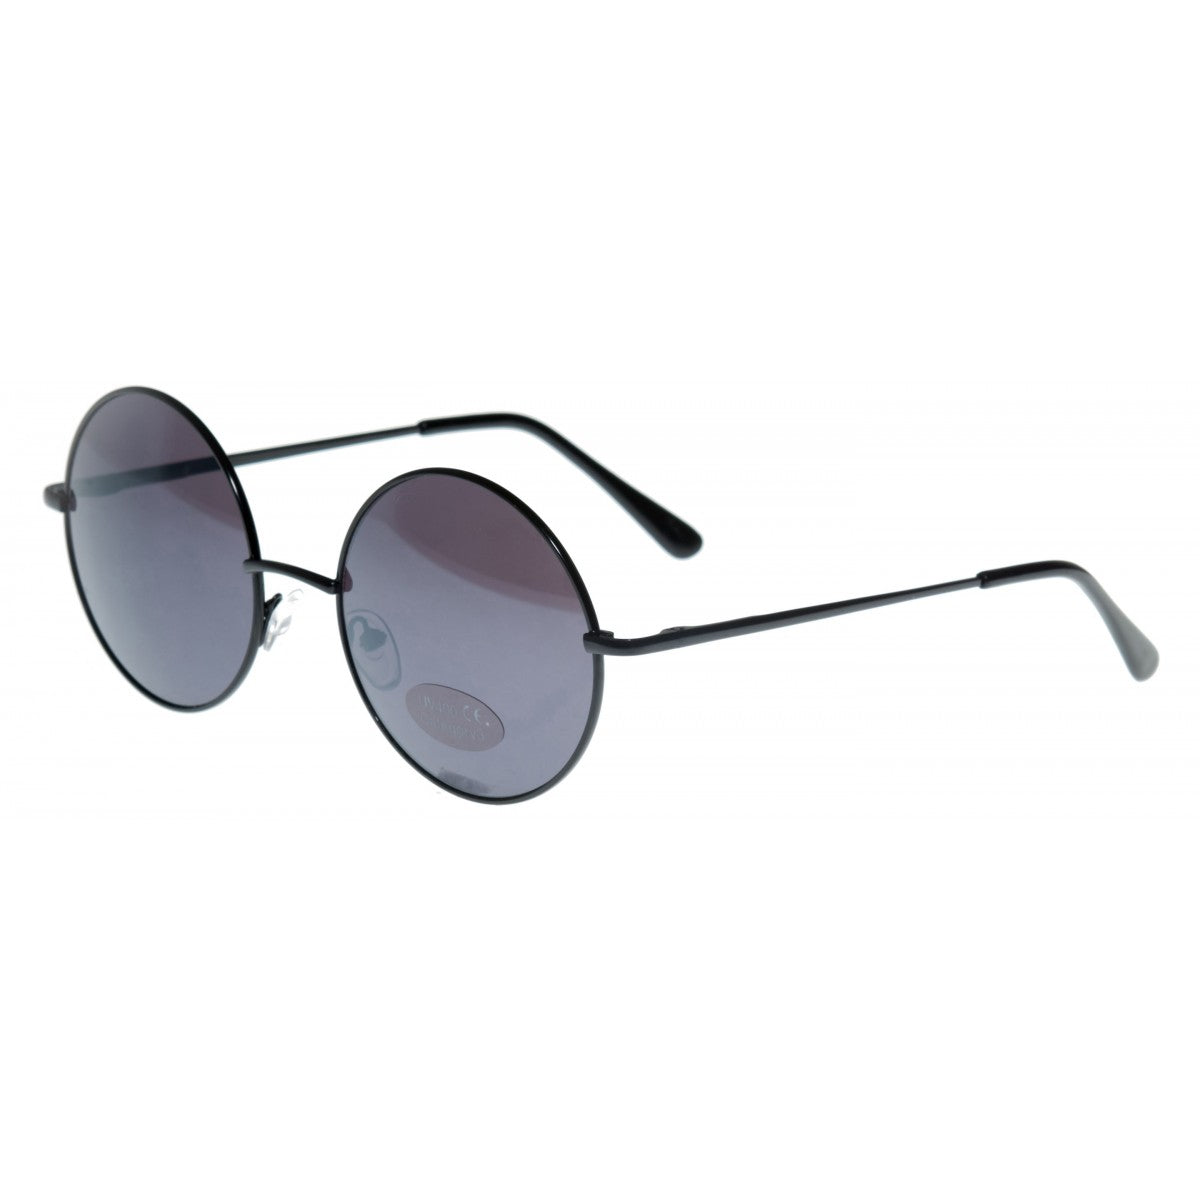 Medium Lens Dark/Smoked/Tinted Penny Sunglasses